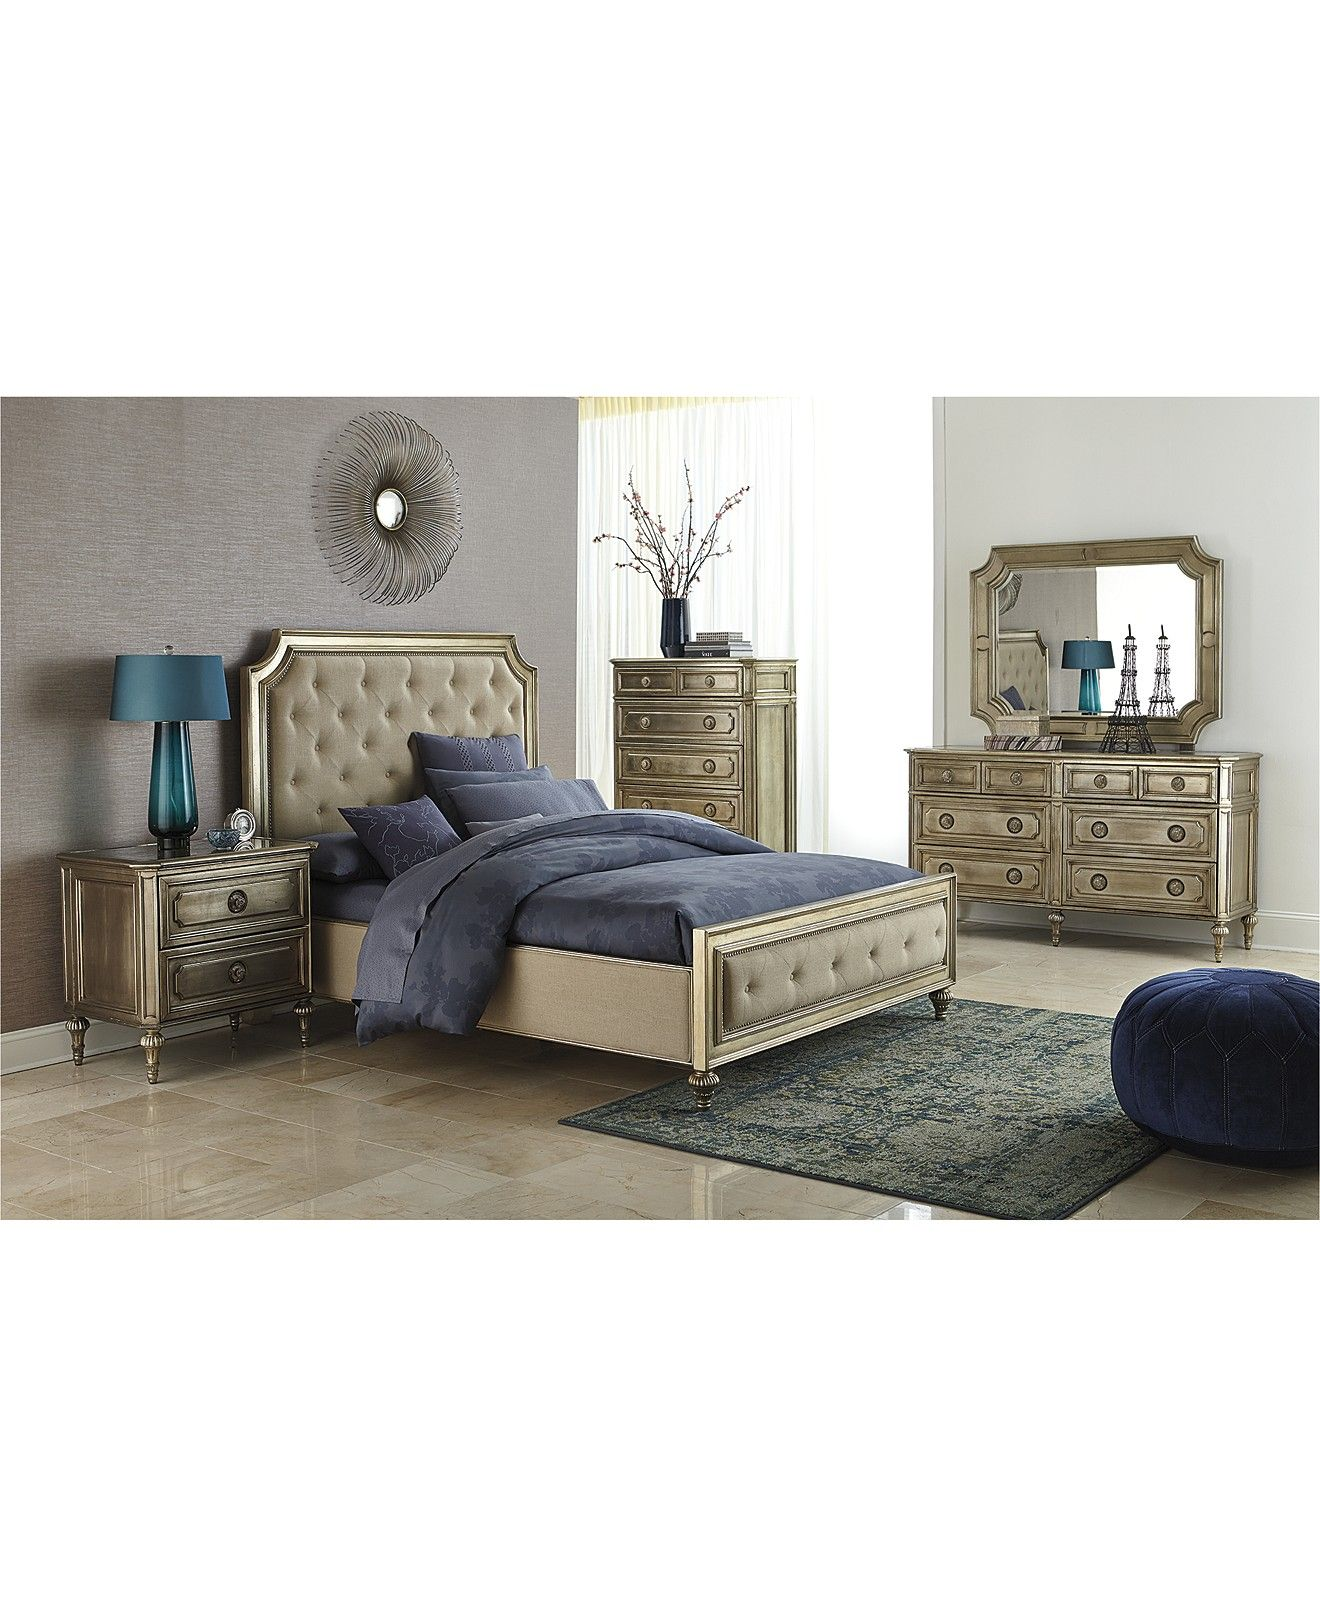 Prosecco 9 Piece Queen Bedroom Furniture Set with Chest - Shop All